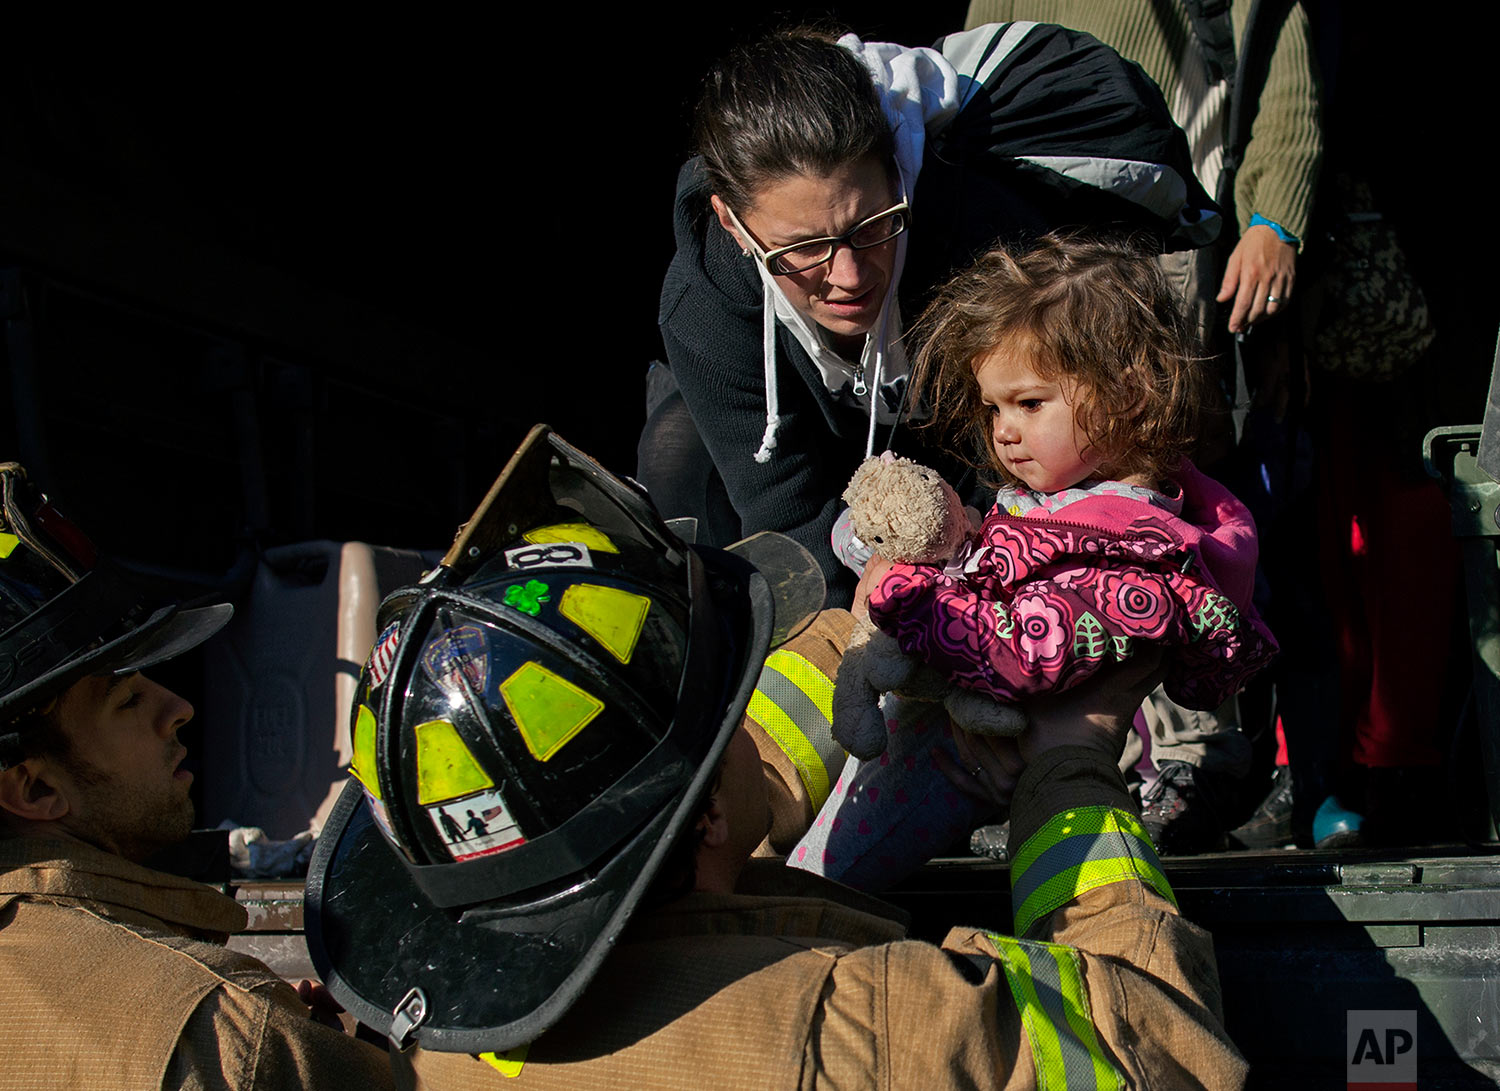 On a National Guard truck, Ali LaPointe, of Hoboken, N.J., hands her daughter Eliza Skye LaPointe, 18-months-old, to Hoboken firefighters, Wednesday, Oct. 31, 2012, in Hoboken, N.J., in the wake of superstorm Sandy. Some residents are being plucked from their homes by large trucks as parts of the city are still covered in standing water. (AP Photo/Craig Ruttle)